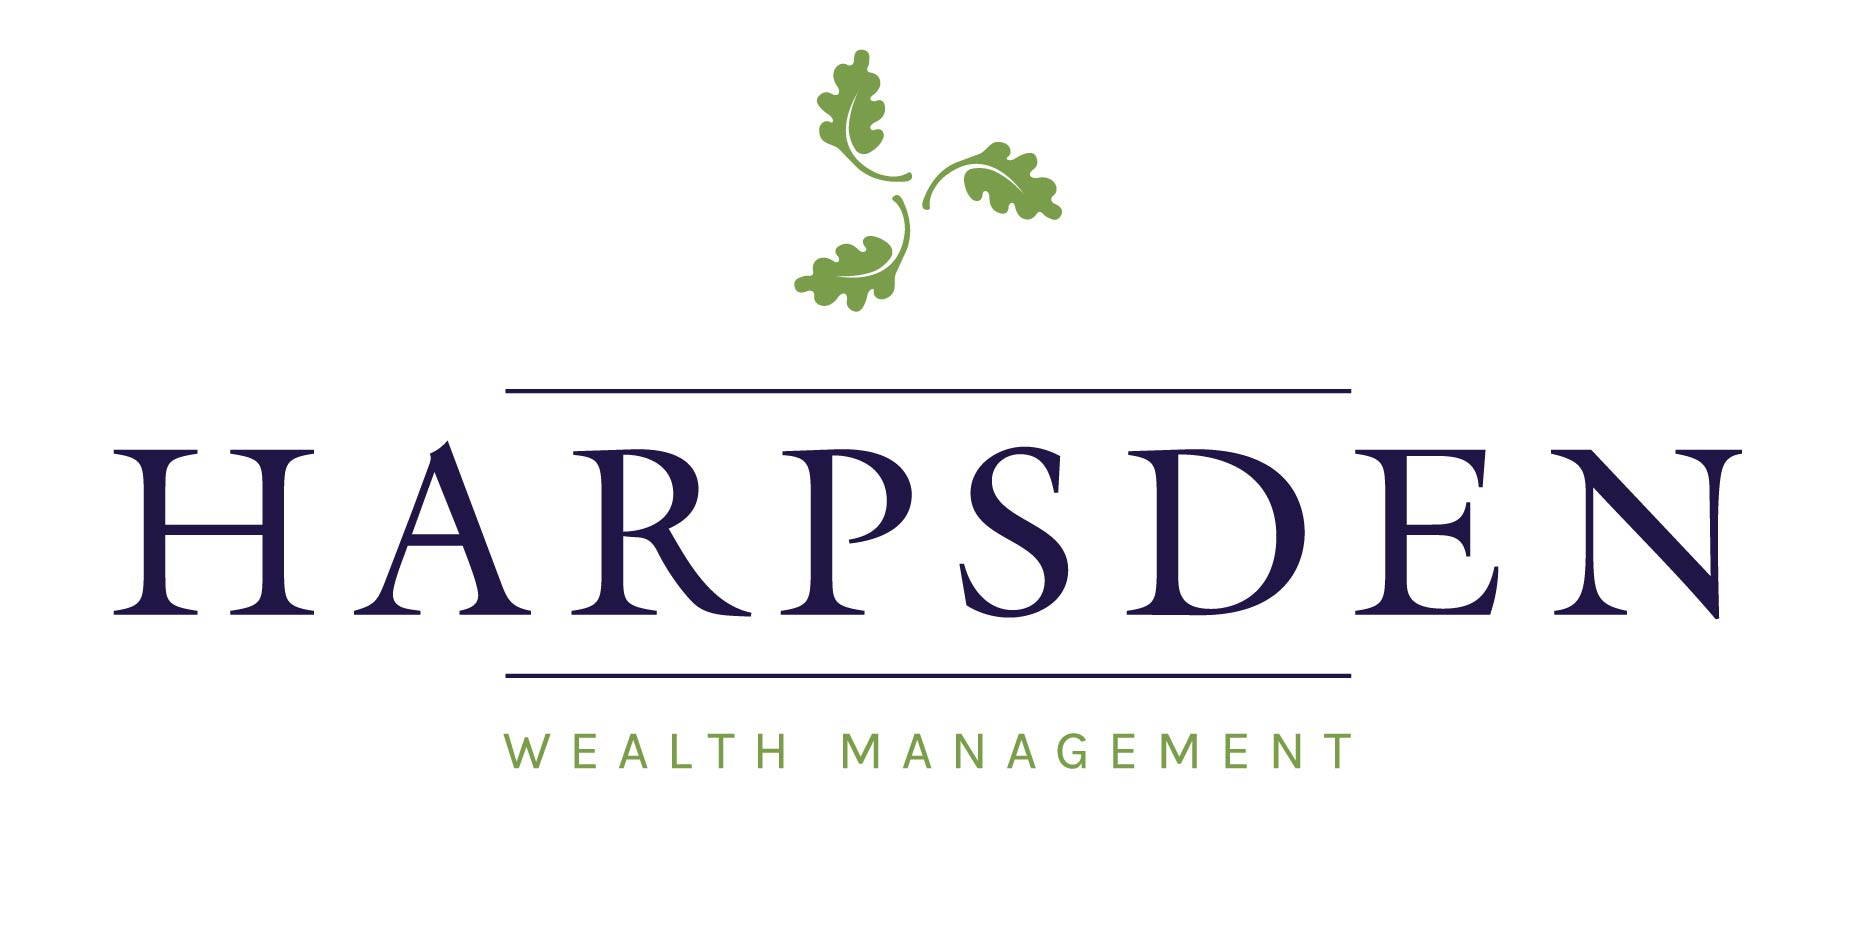 Harpsden Wealth Management Limited